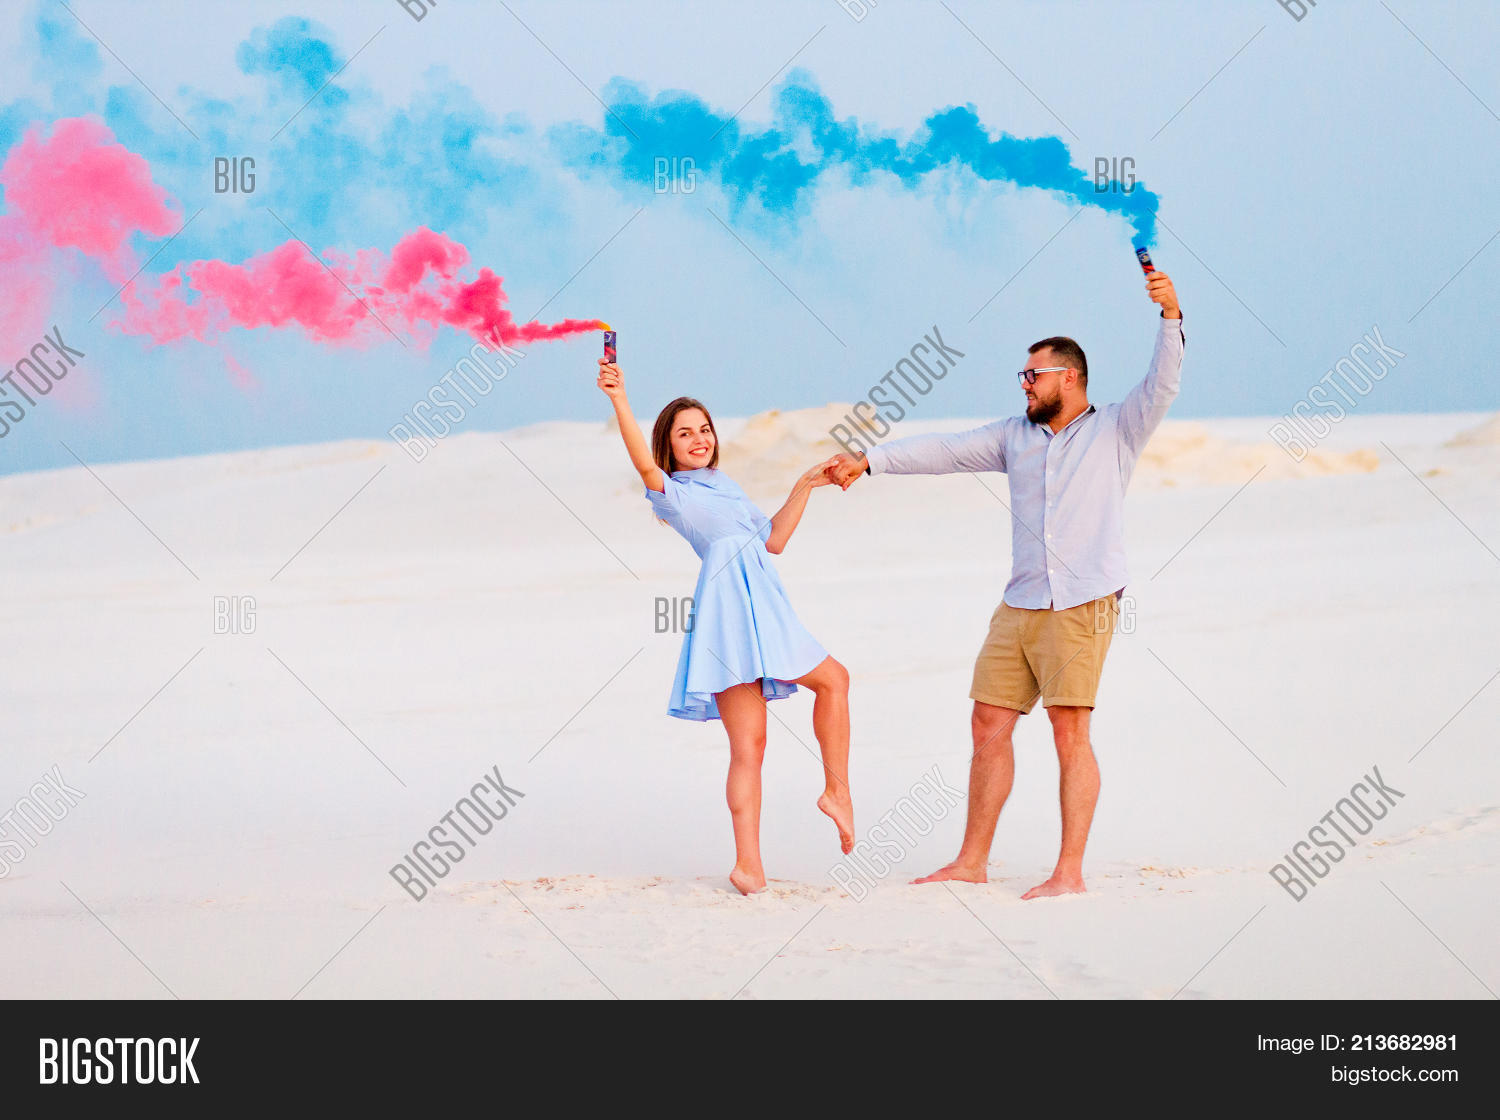 Young Couple Standing Image & Photo (Free Trial) | Bigstock